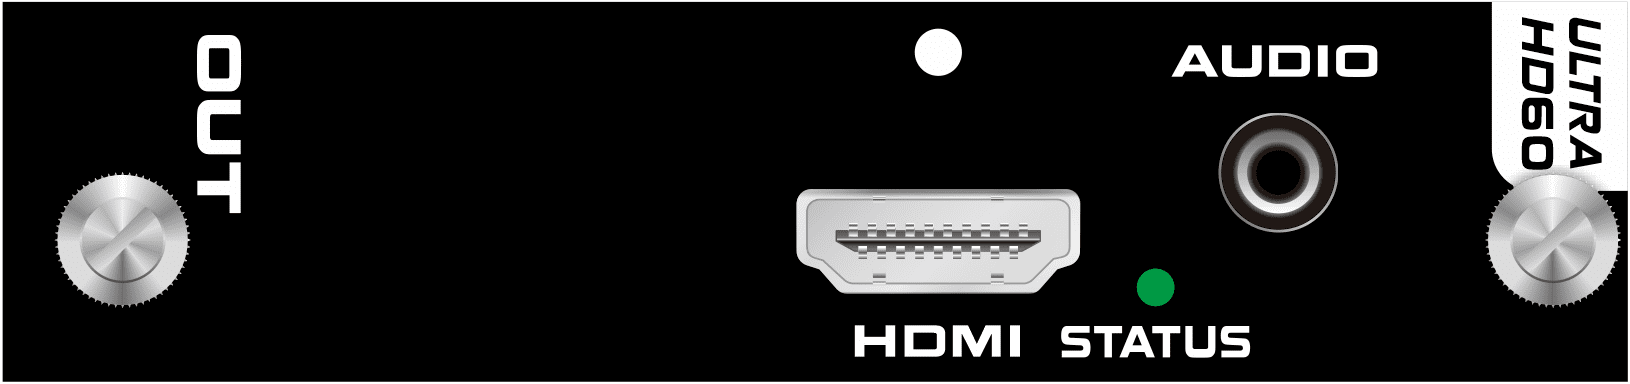 4K/60 HDMI Output Card with HDR, Dolby Vision & Atmos